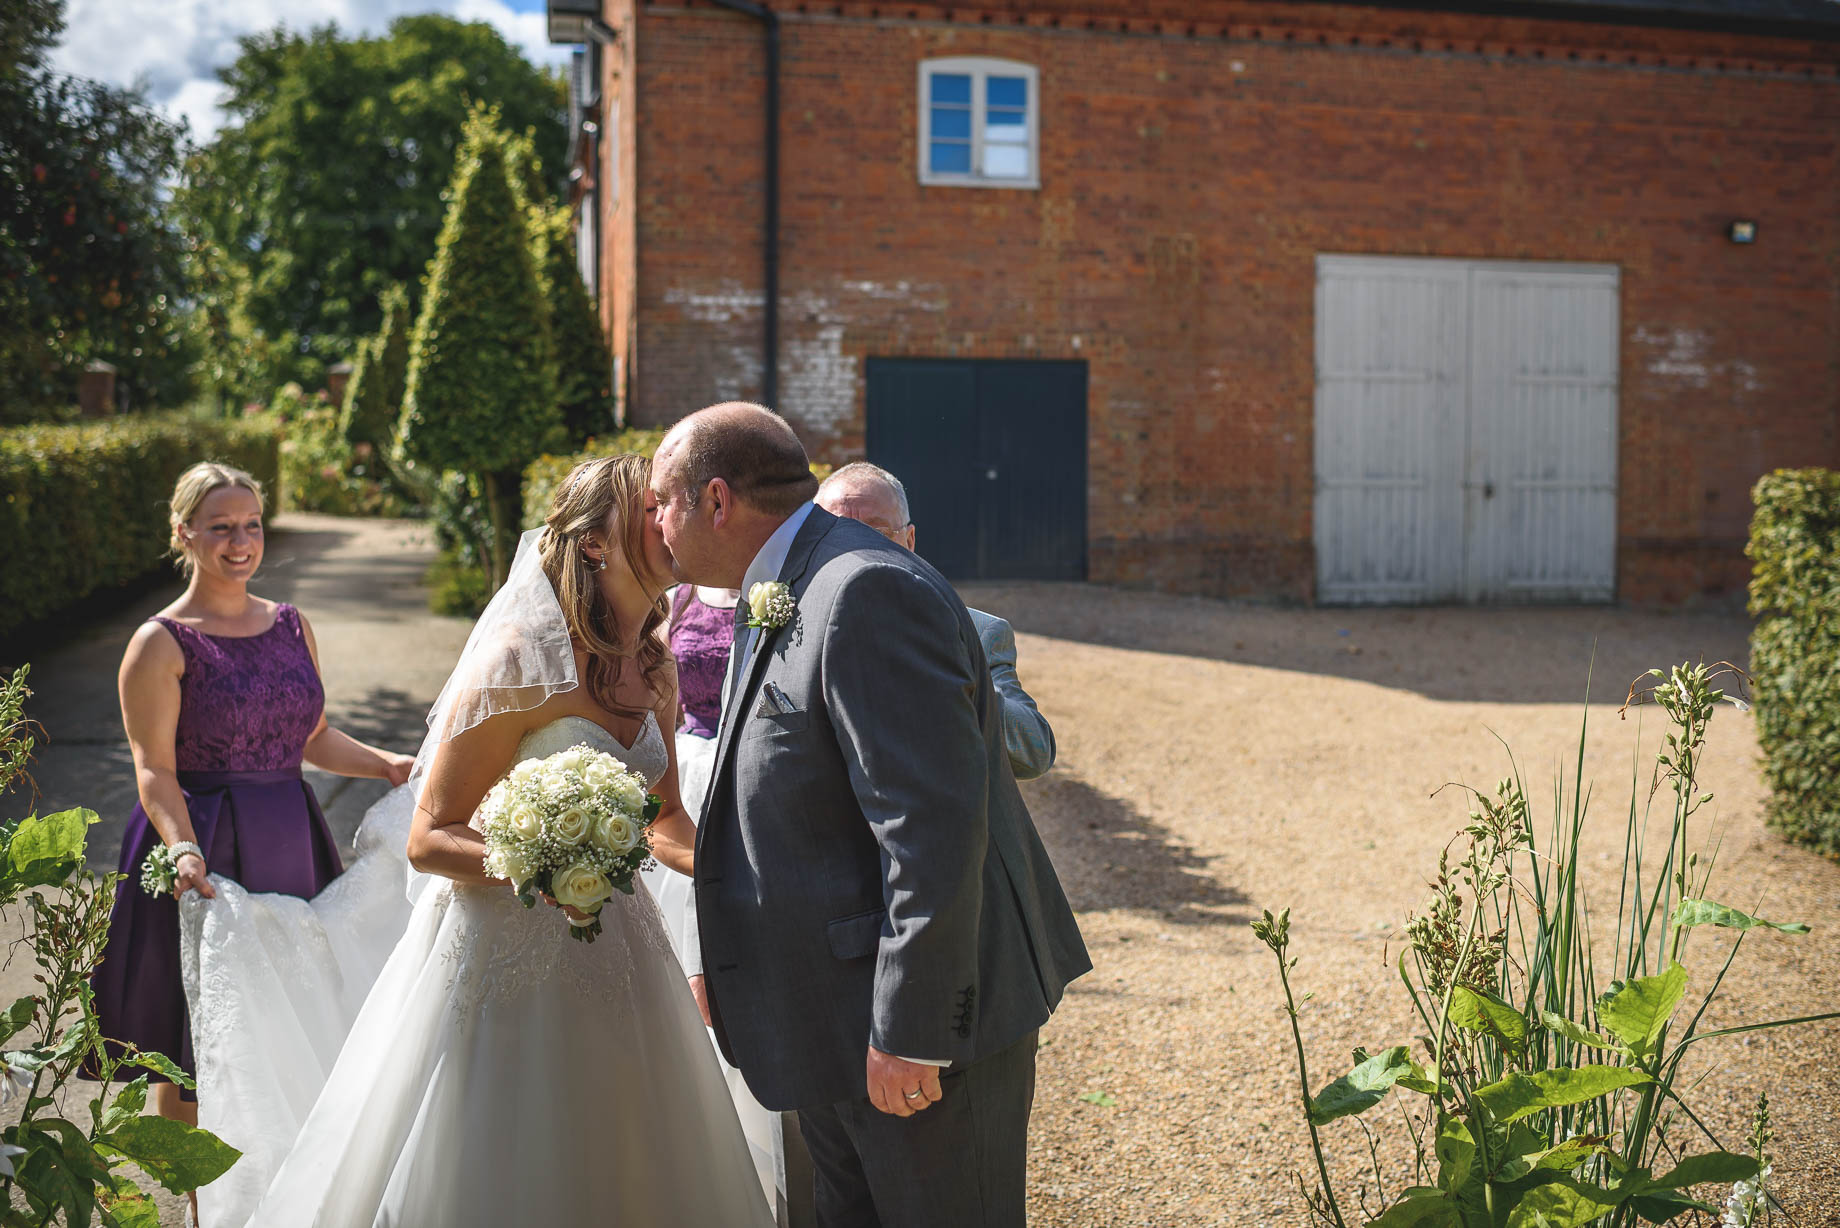 Bury Court Barn wedding photography - Guy Collier - Kirsty and Lewis (51 of 150)